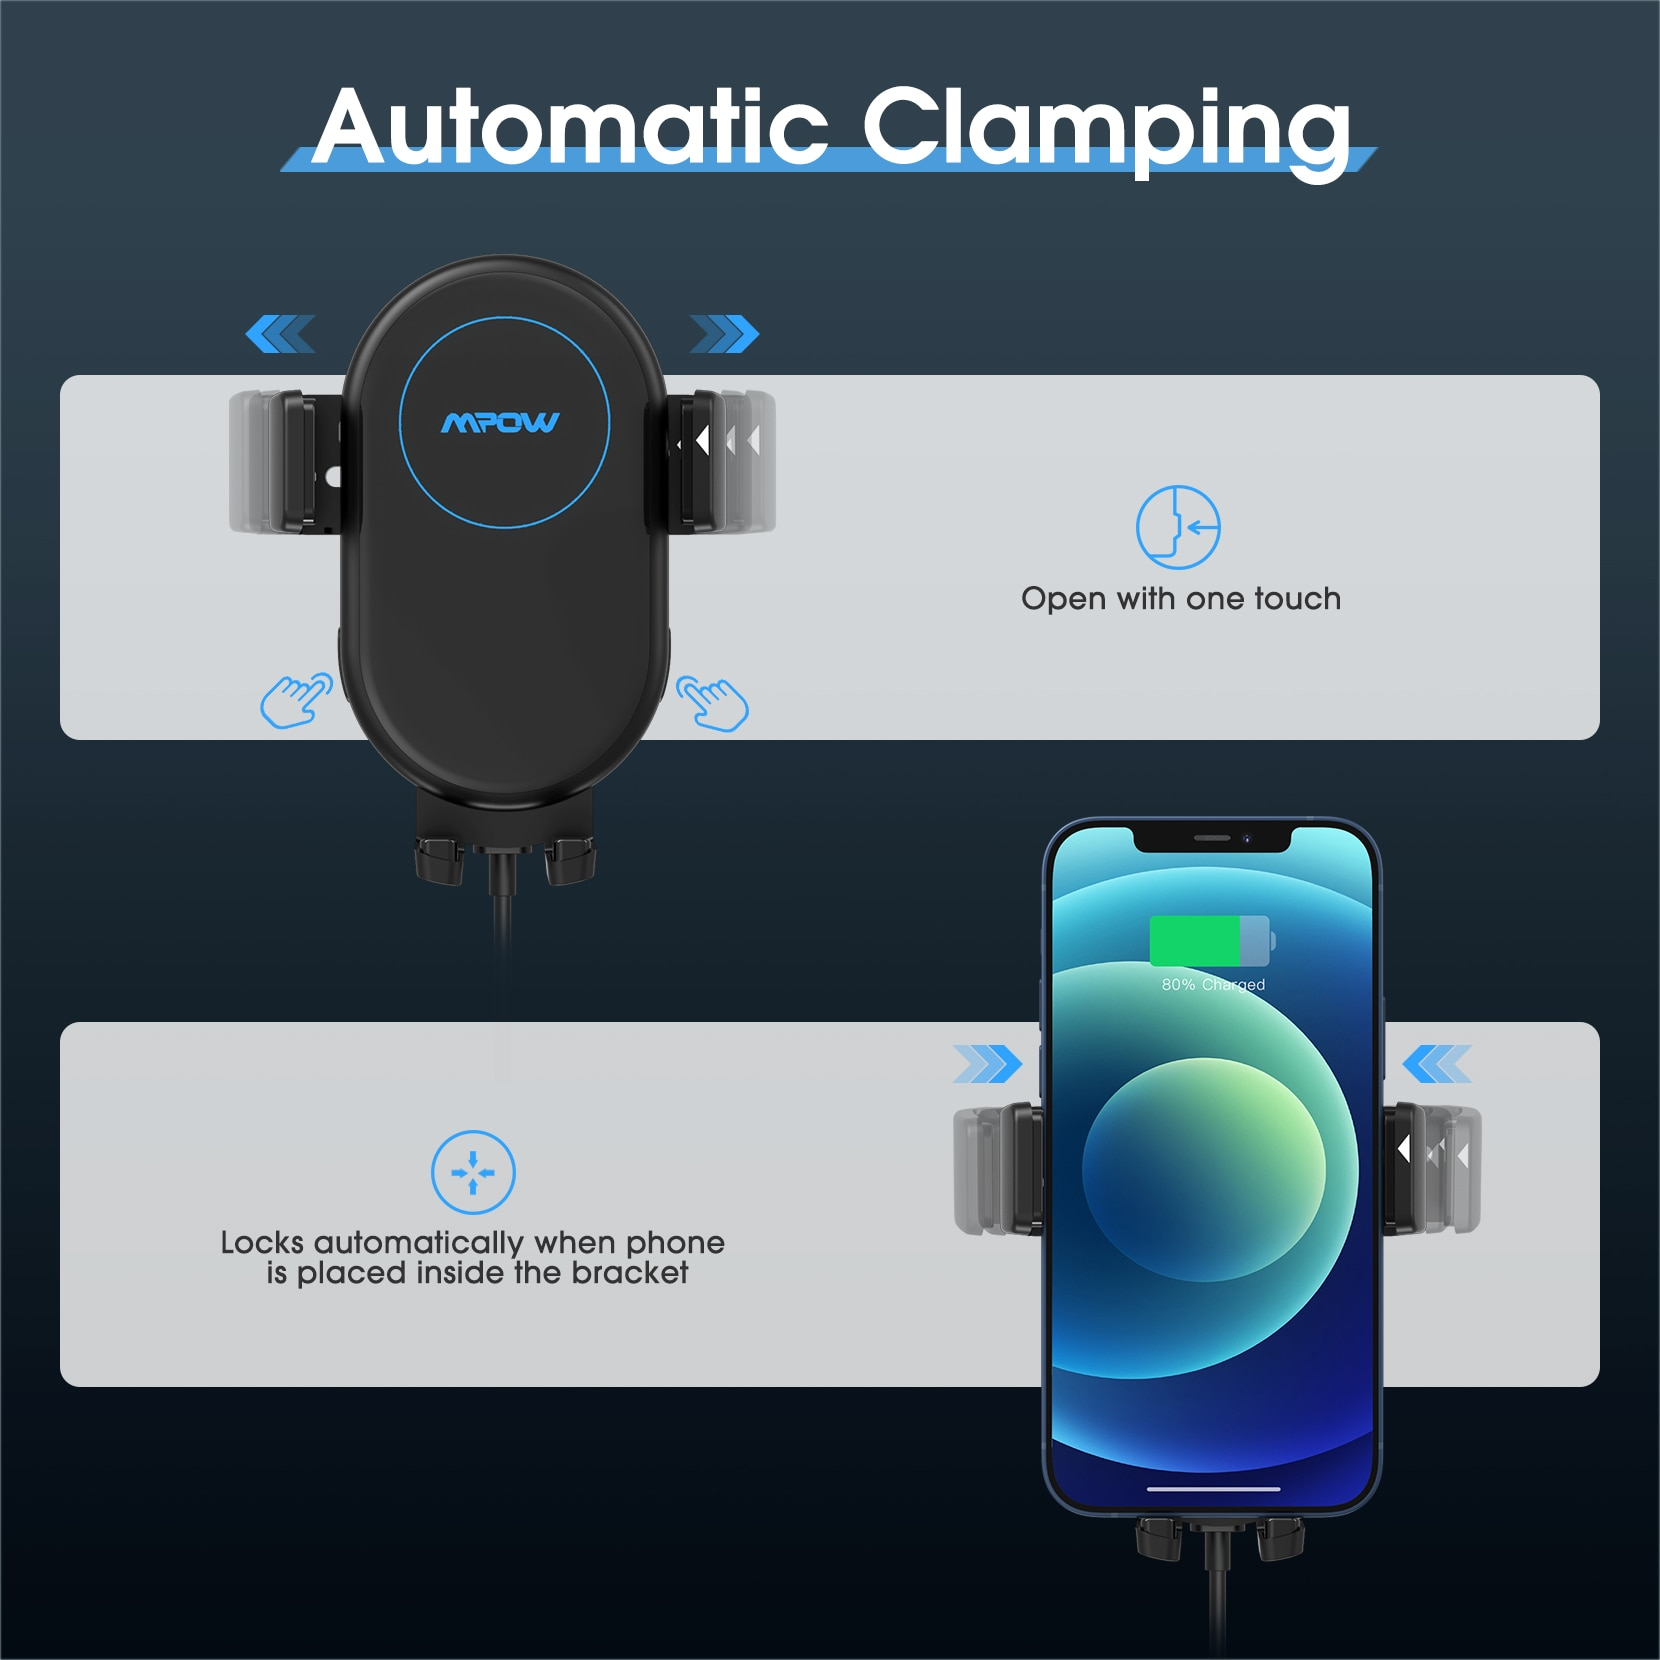 H9b715cd3cb354fbfa35081f60034ff73E - Mpow Wireless Car Charger Mount 10W Auto-clamping Qi Fast Charging Car Mount with Power Storage Car Phone Holder for iPhone 12